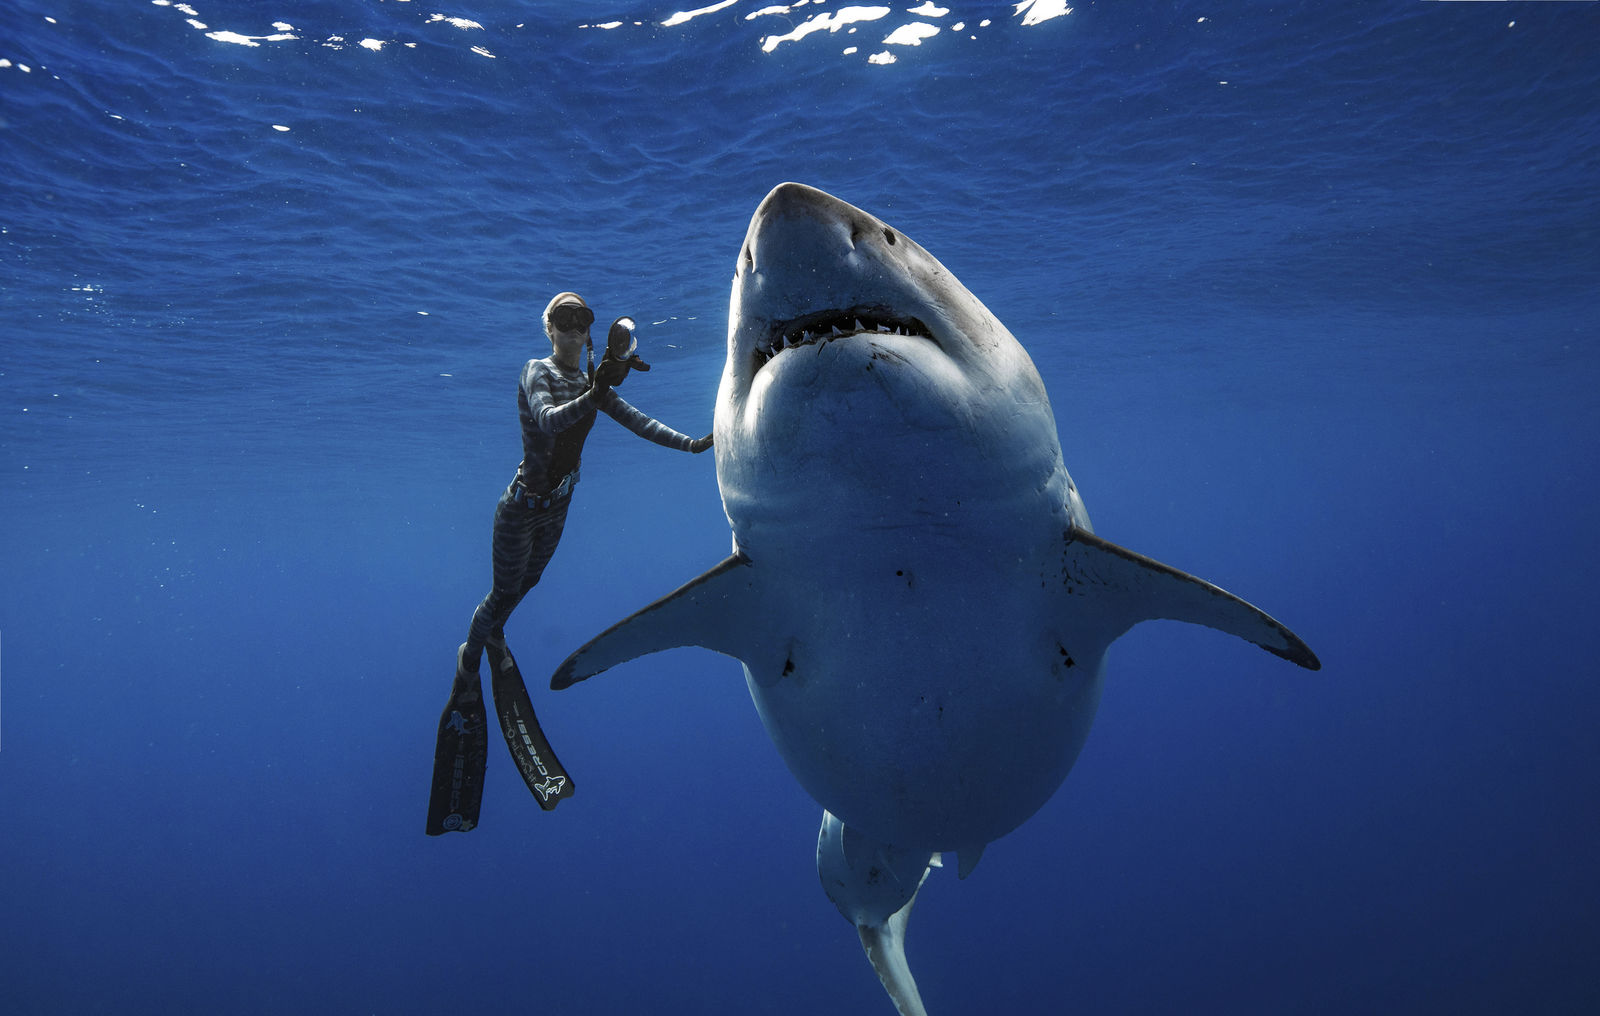 In this Jan. 15, 2019 photo provided by Juan Oliphant, Ocean Ramsey, a shark researcher and advocate, swims with a large great white shark off the shore of Oahu. (Juan Oliphant via AP)